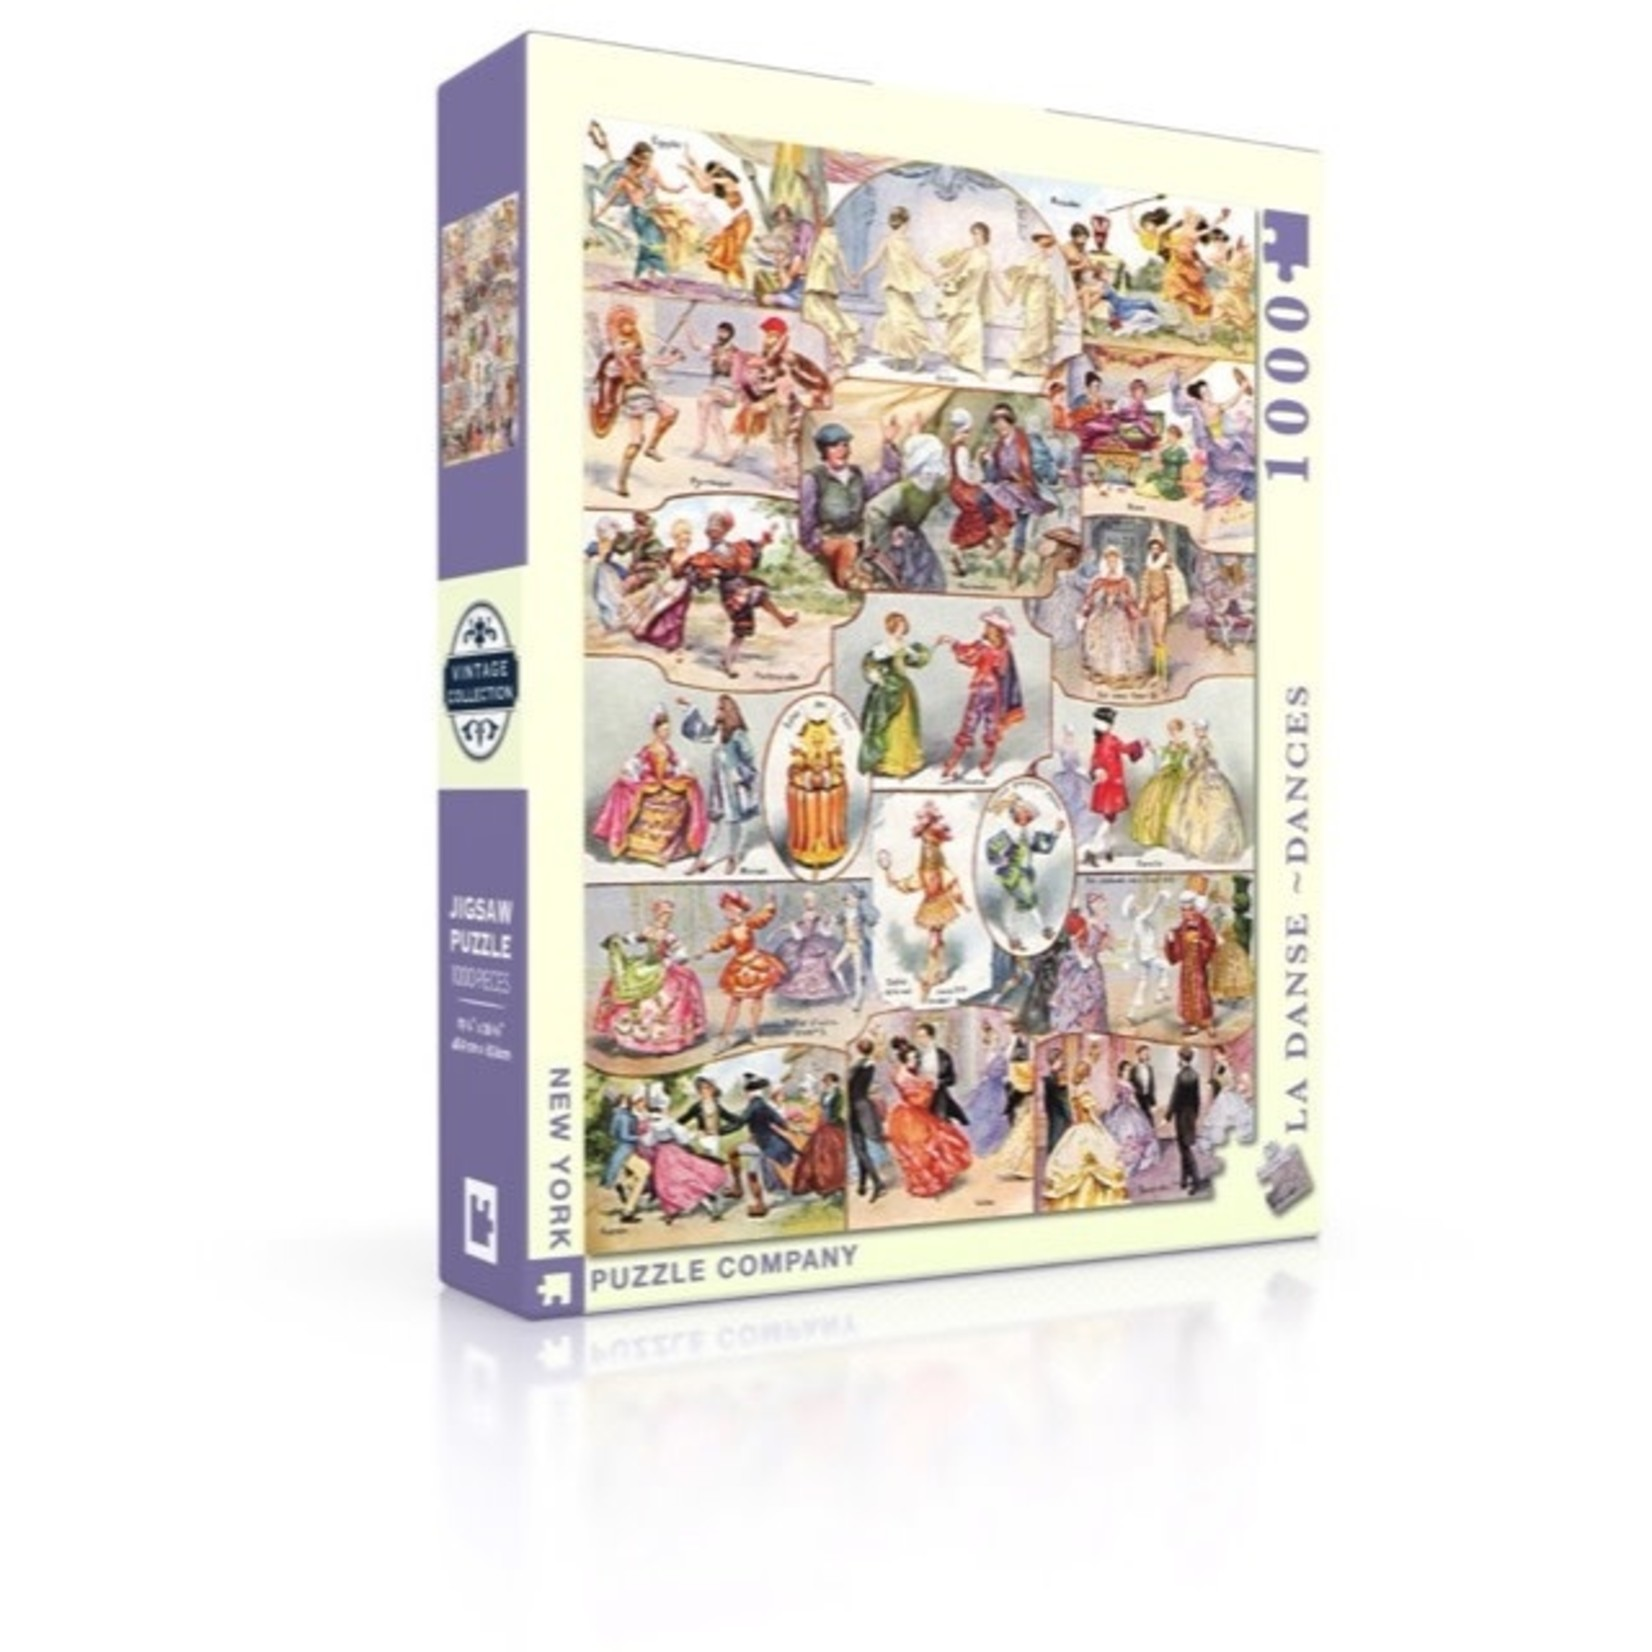 New York Puzzle Co La Danse 1000pc